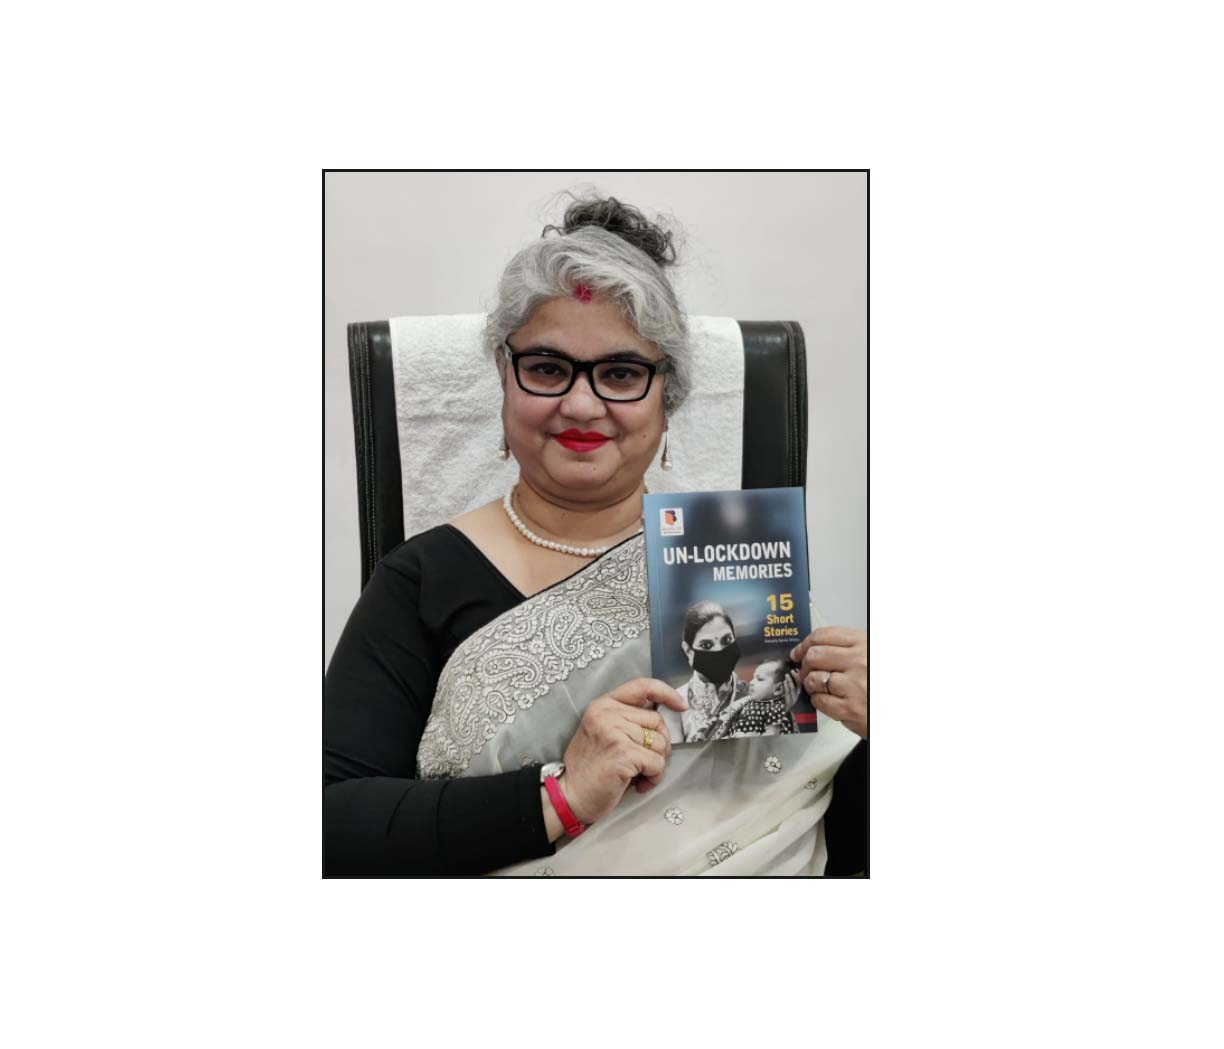 How Lockdown, Dr. Shalini Verma, and Books33 created 15 Authors and a book: Un-Lockdown Memories